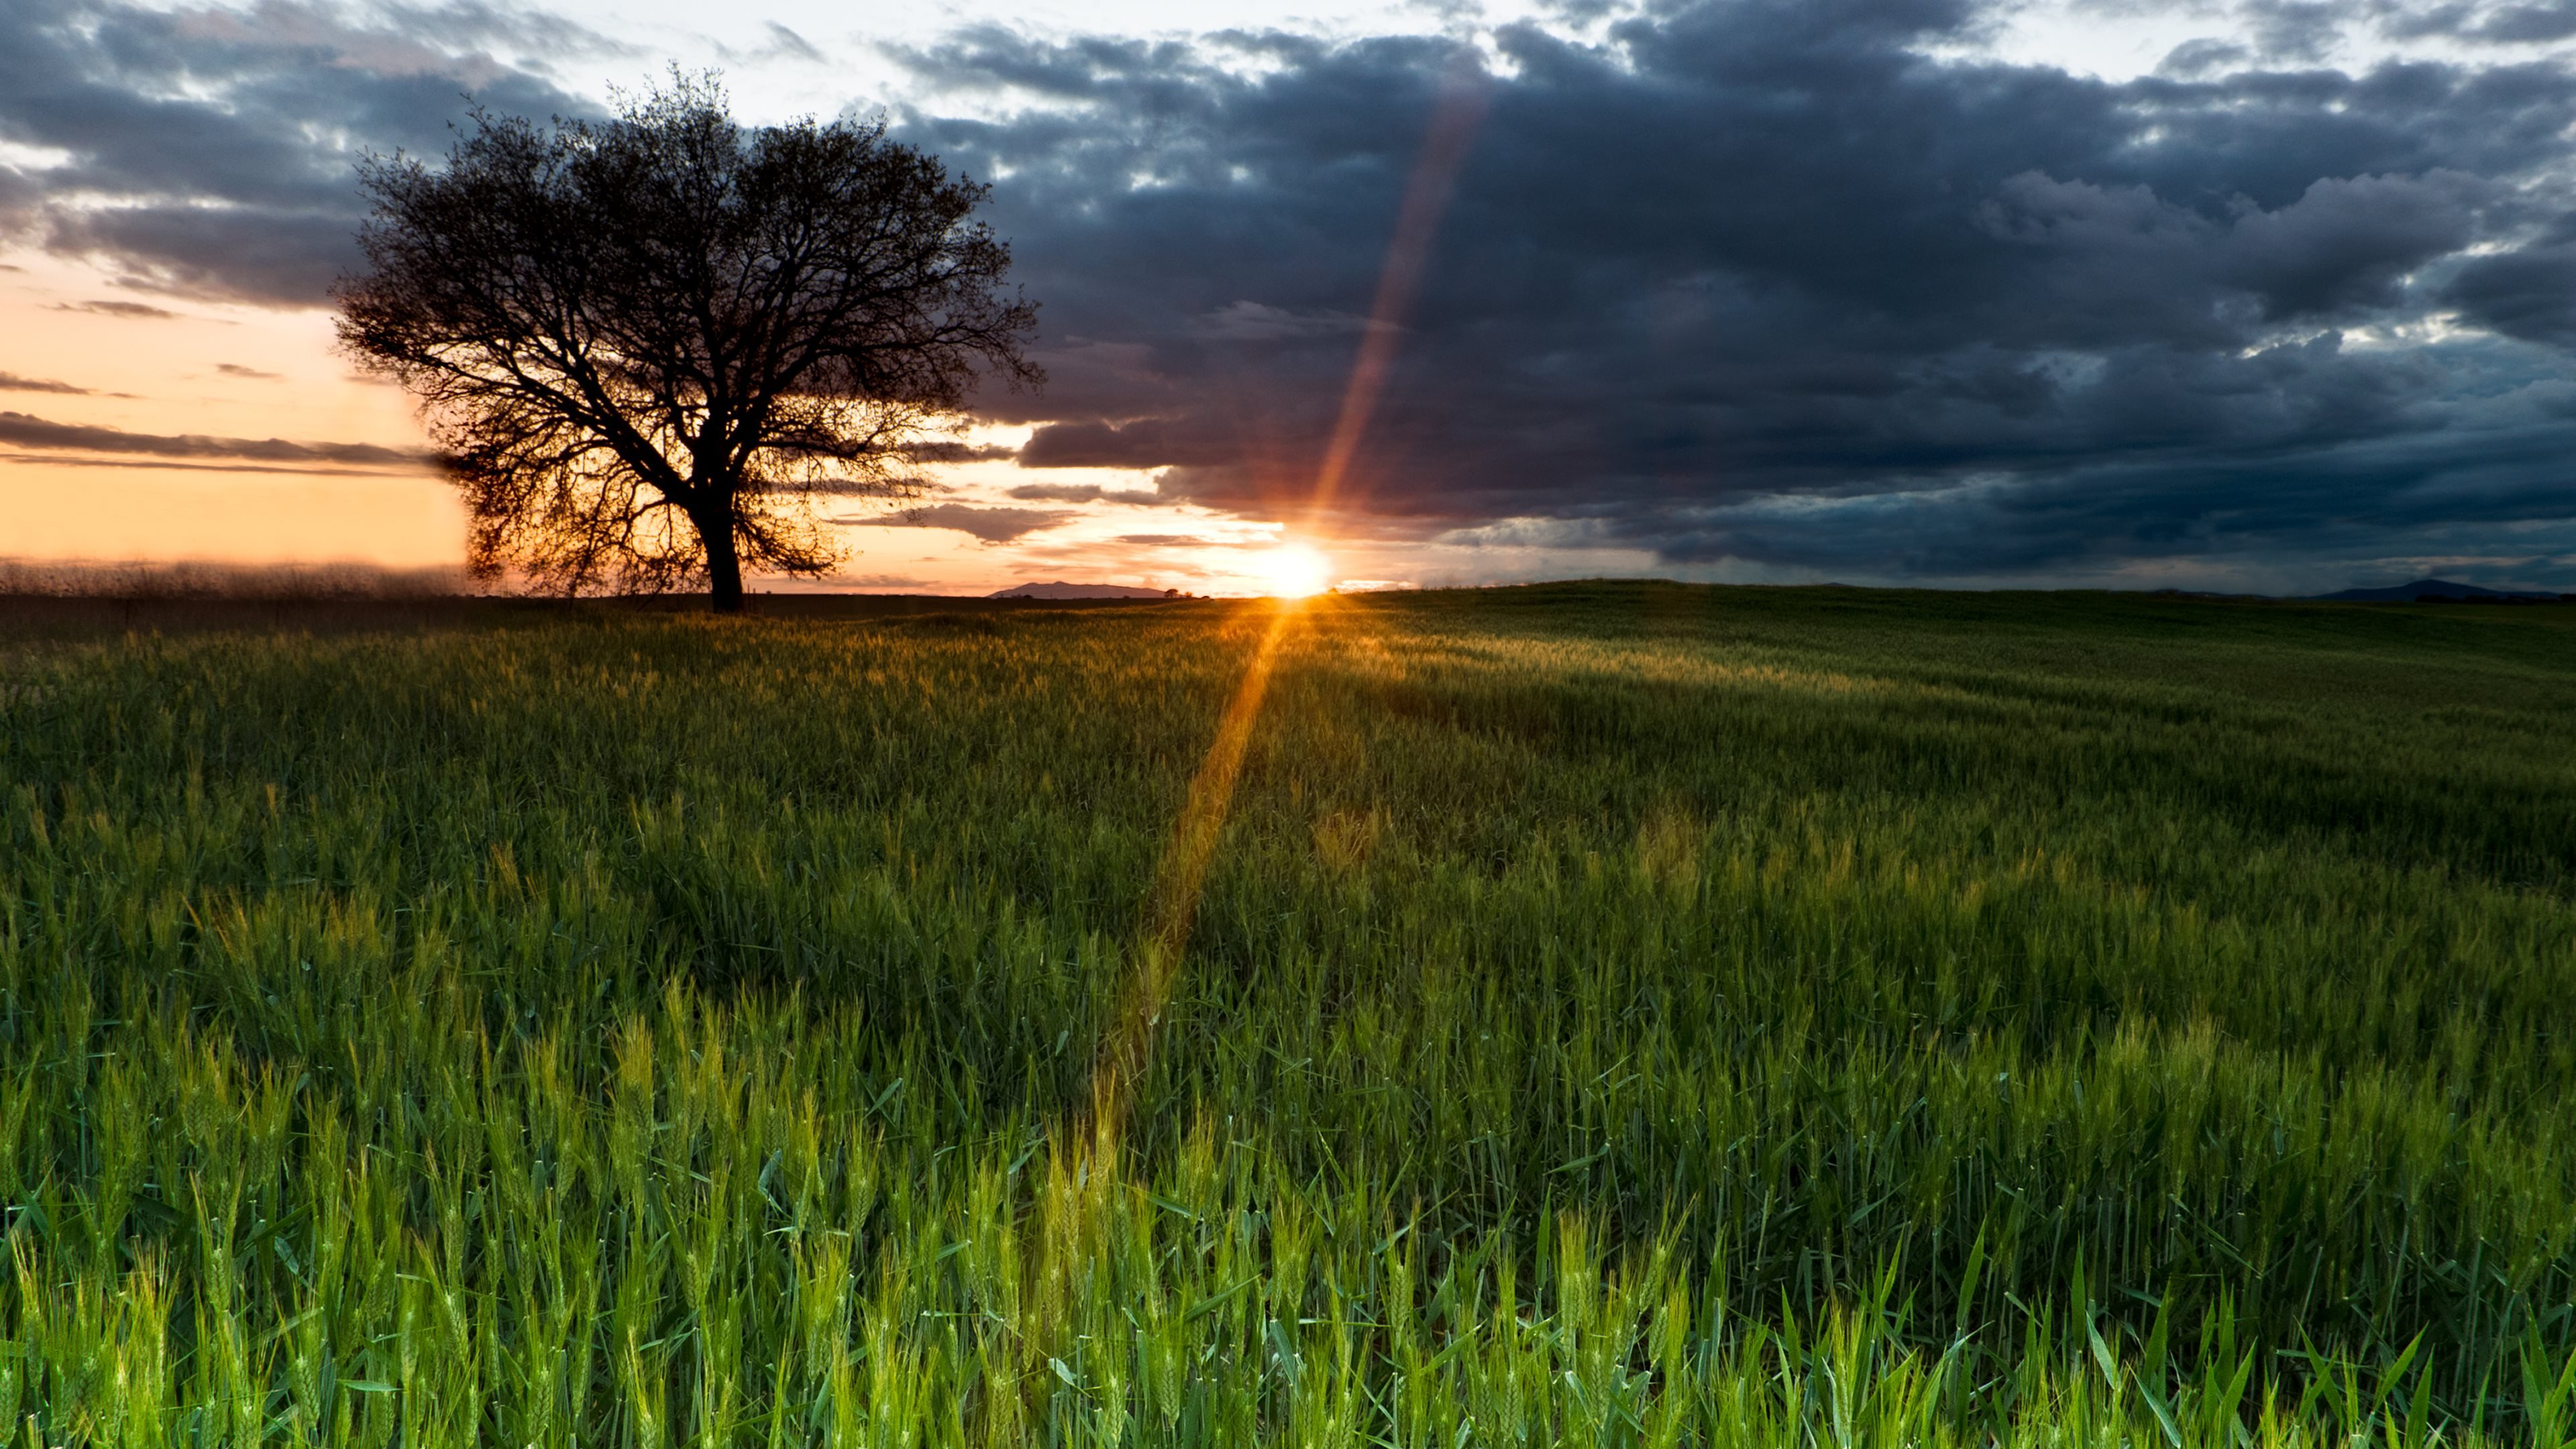 4K Sunshine Gallery HD Wallpaper Wallpapers Photos Images 3840x2160